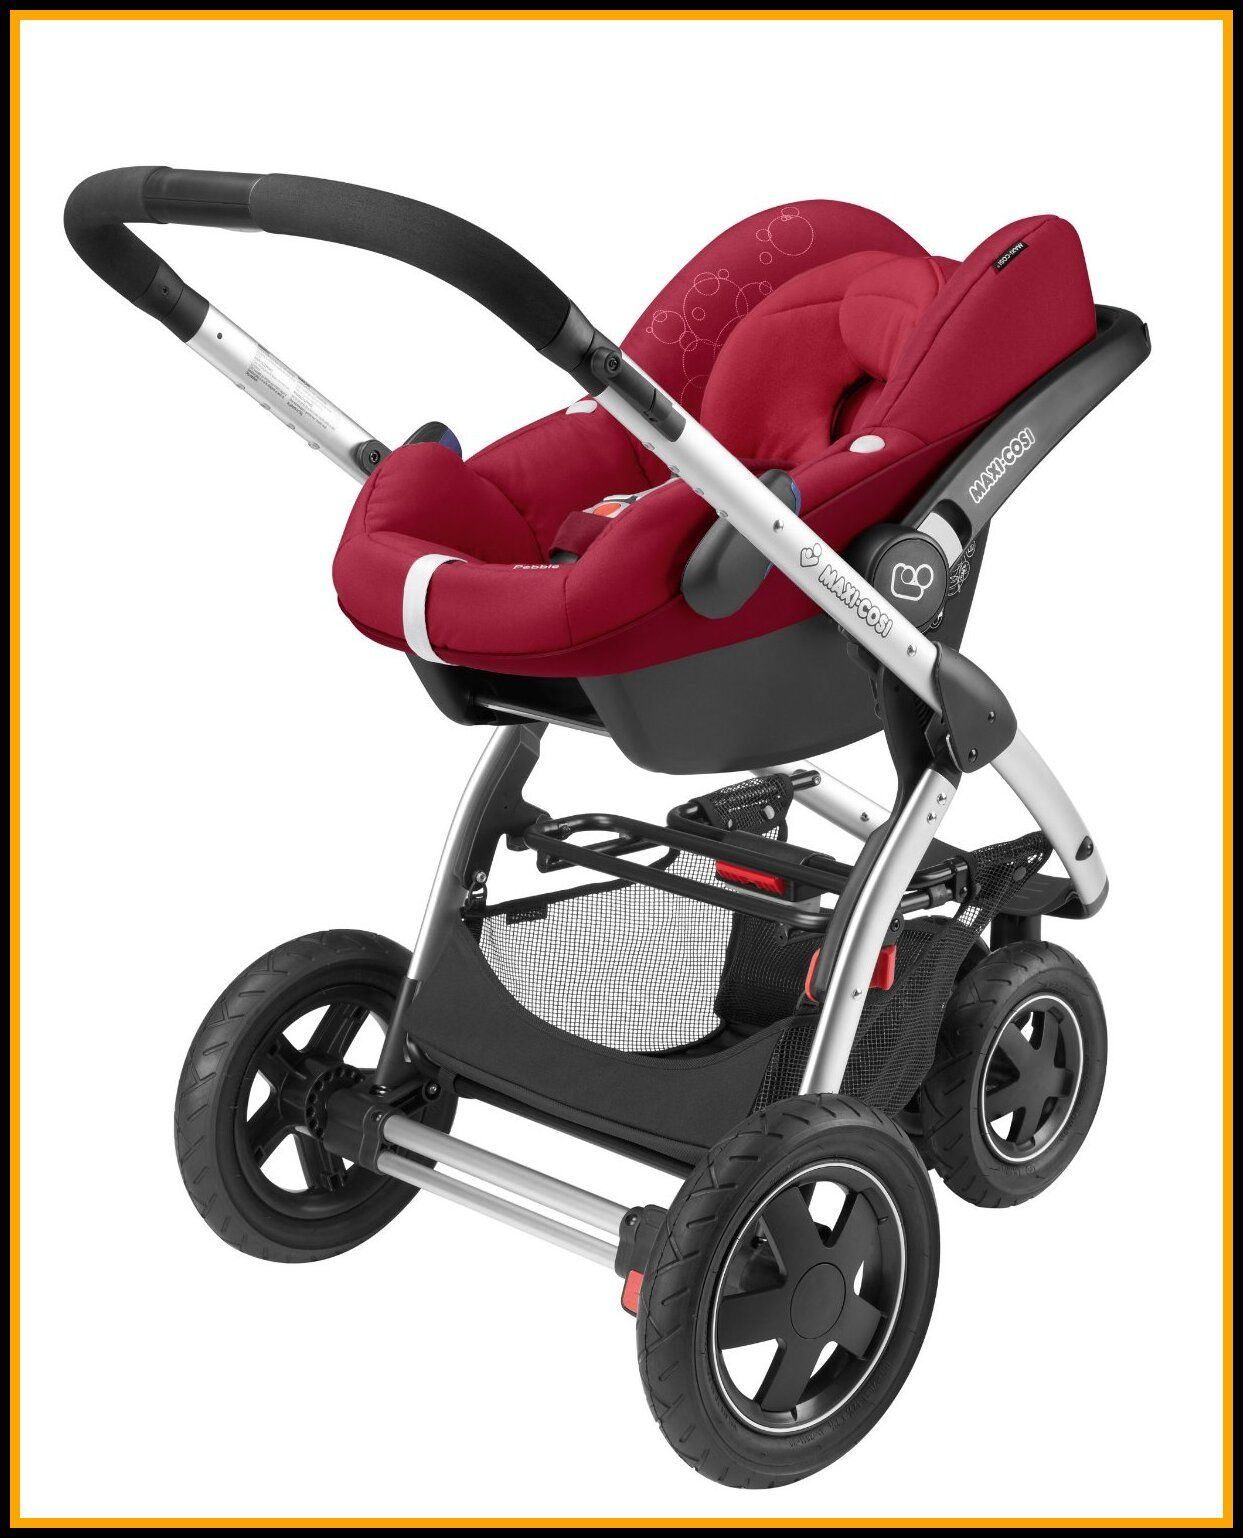 92 reference of travel stroller compatible with maxi cosi